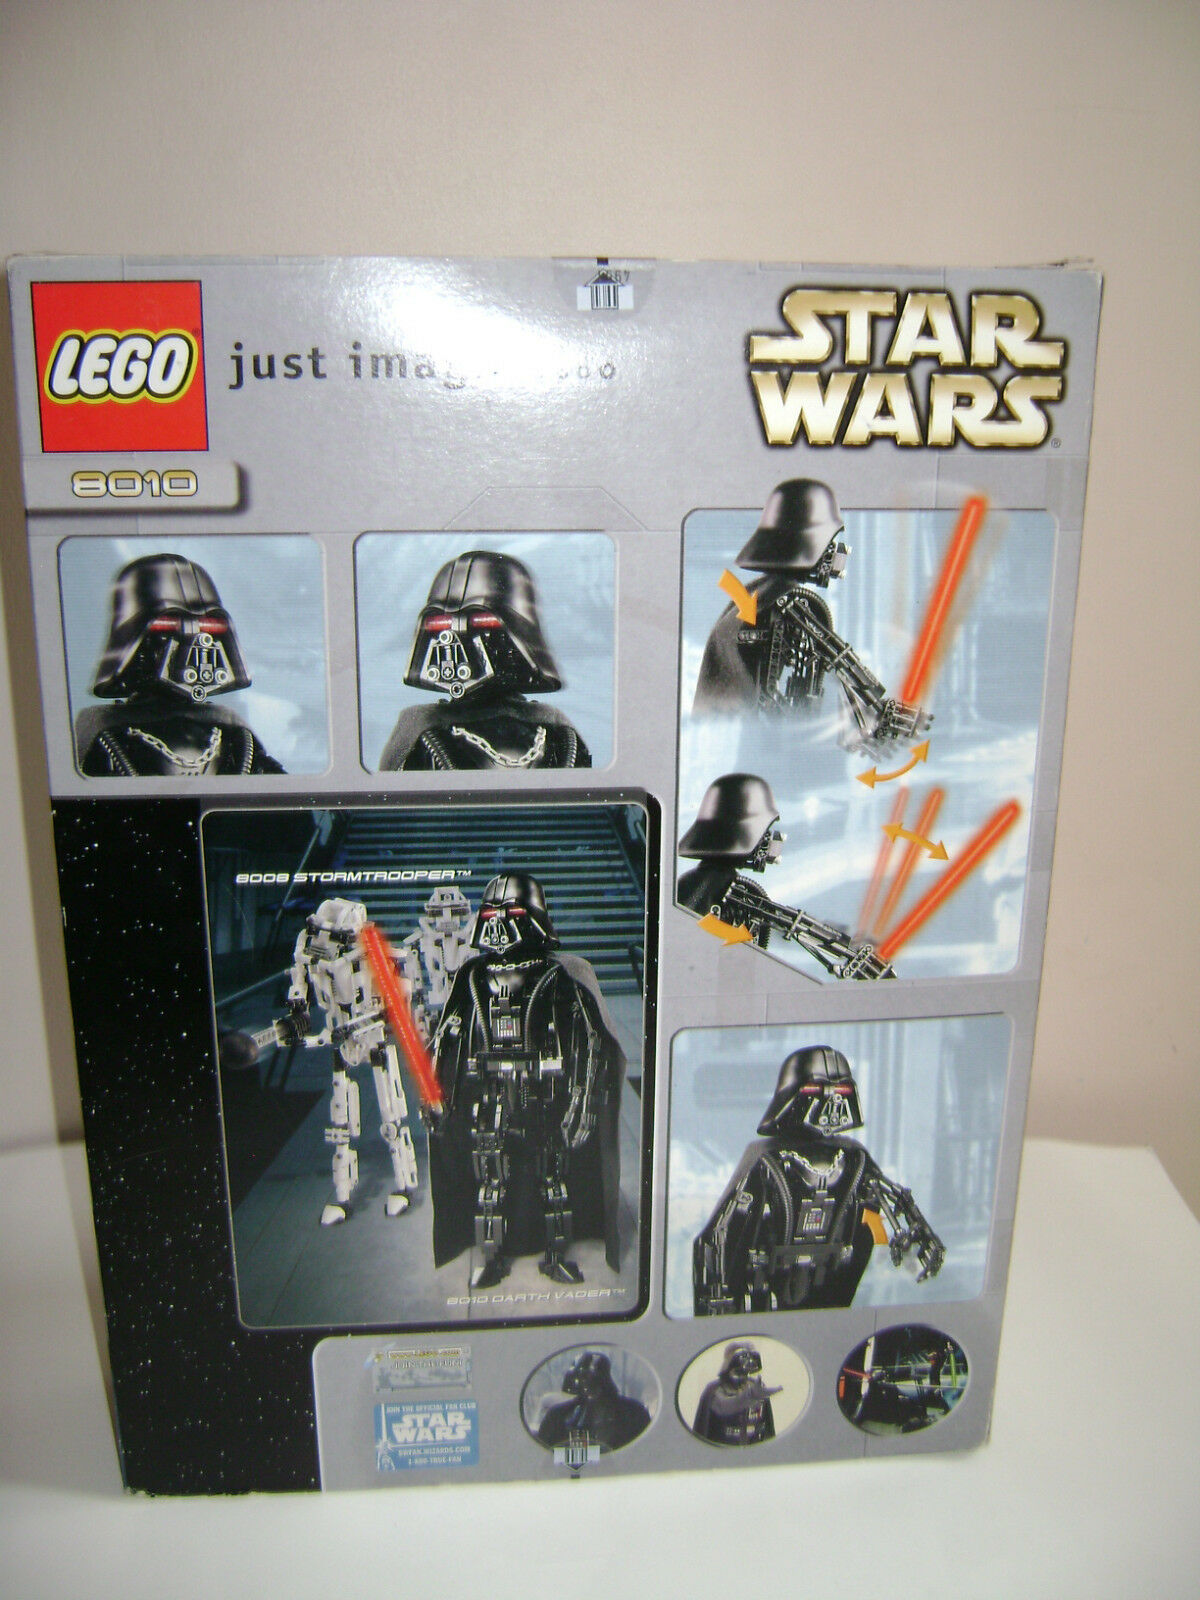 NEW NEW NEW LEGO STAR WARS 8010 RETIRED 2002 COMPLETE RARE DARTH VADER SEALED IN BOX 550e0b